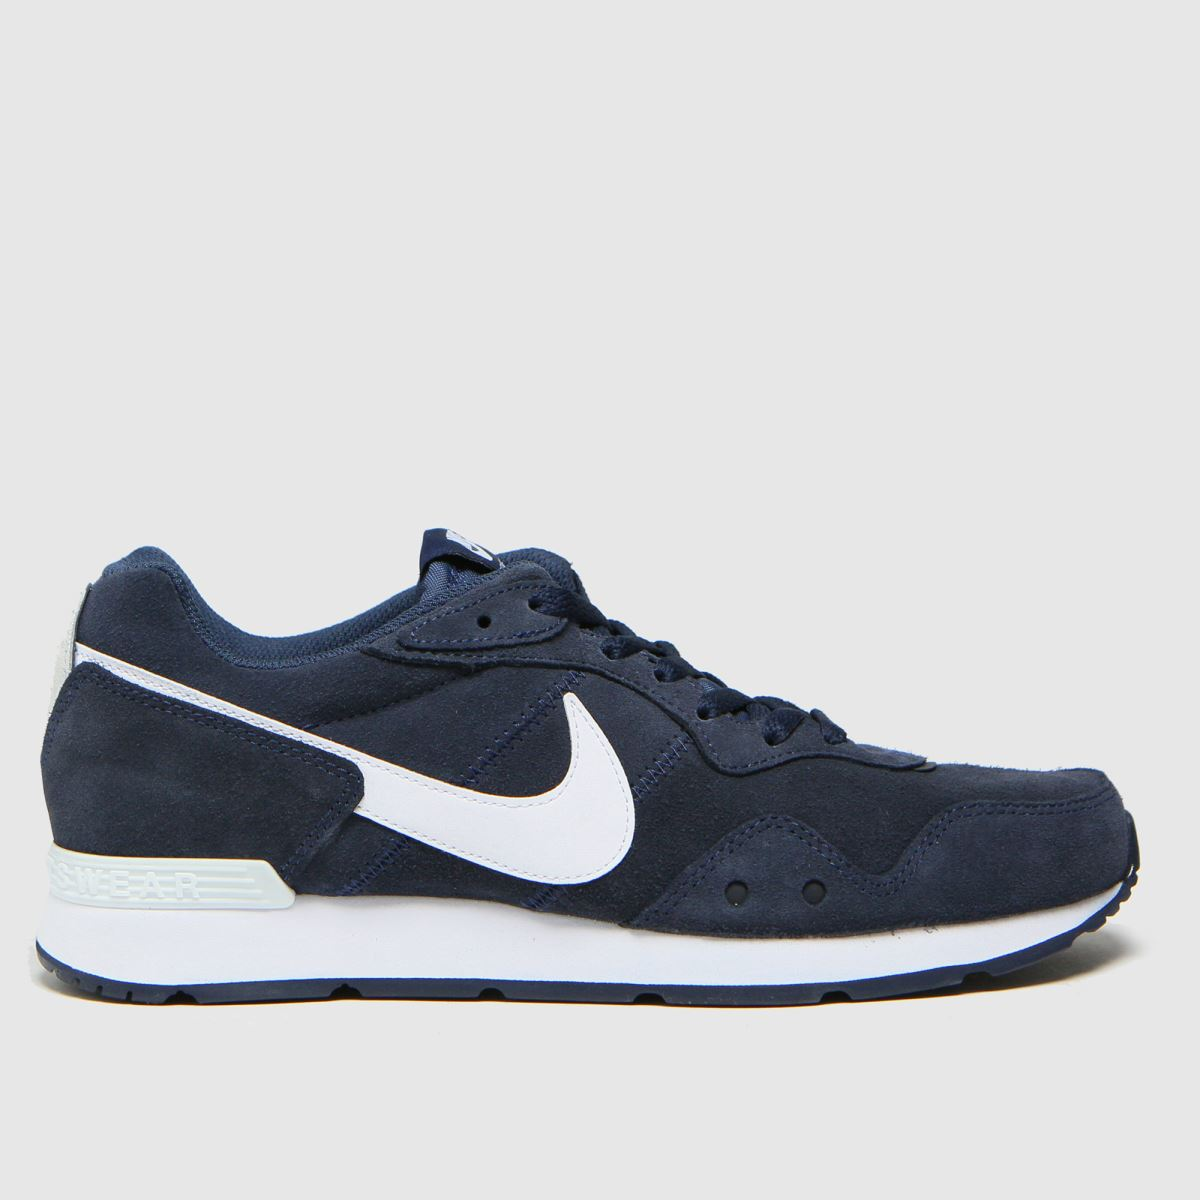 Nike Navy & White Venture Runner Trainers